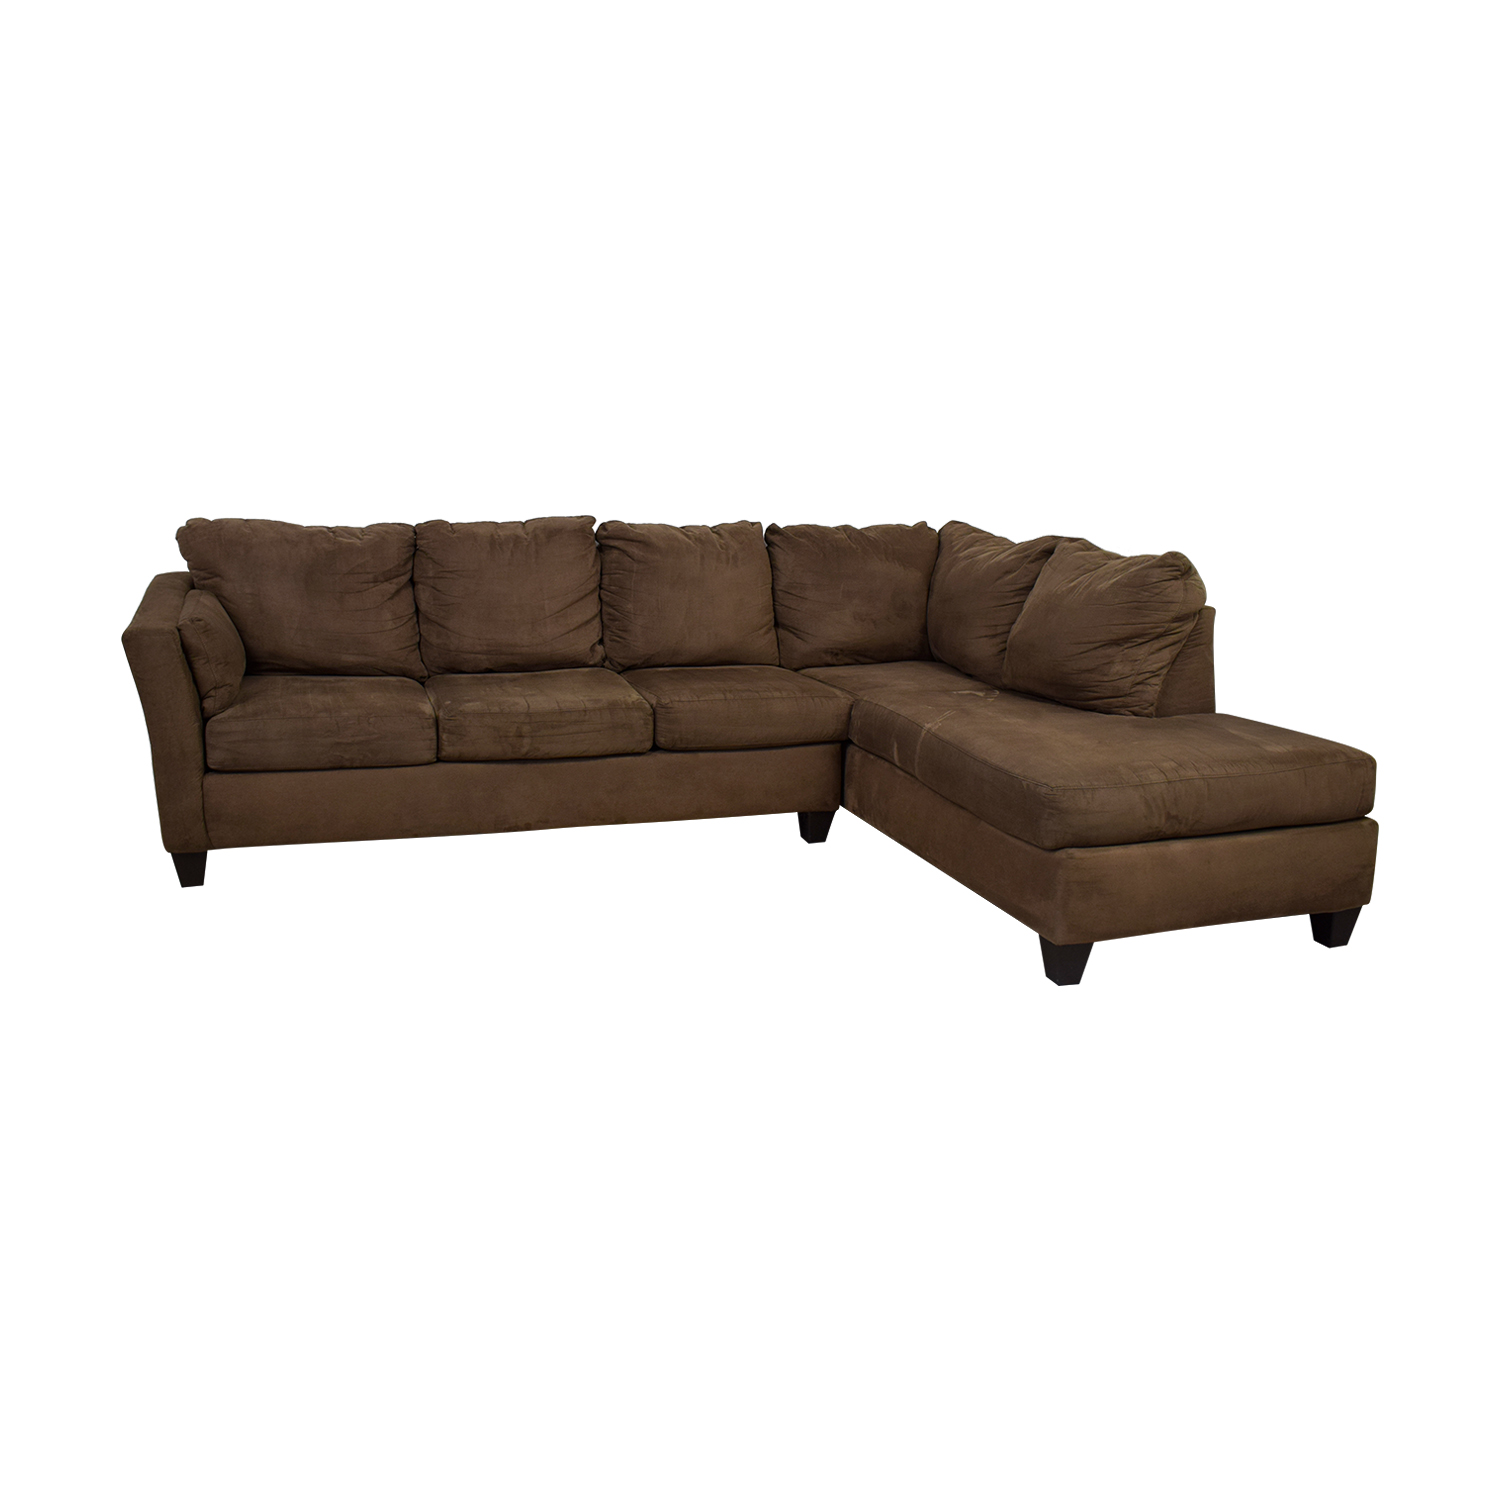 47 Off Bob S Discount Furniture Bob S Furniture Libre Ii Brown L